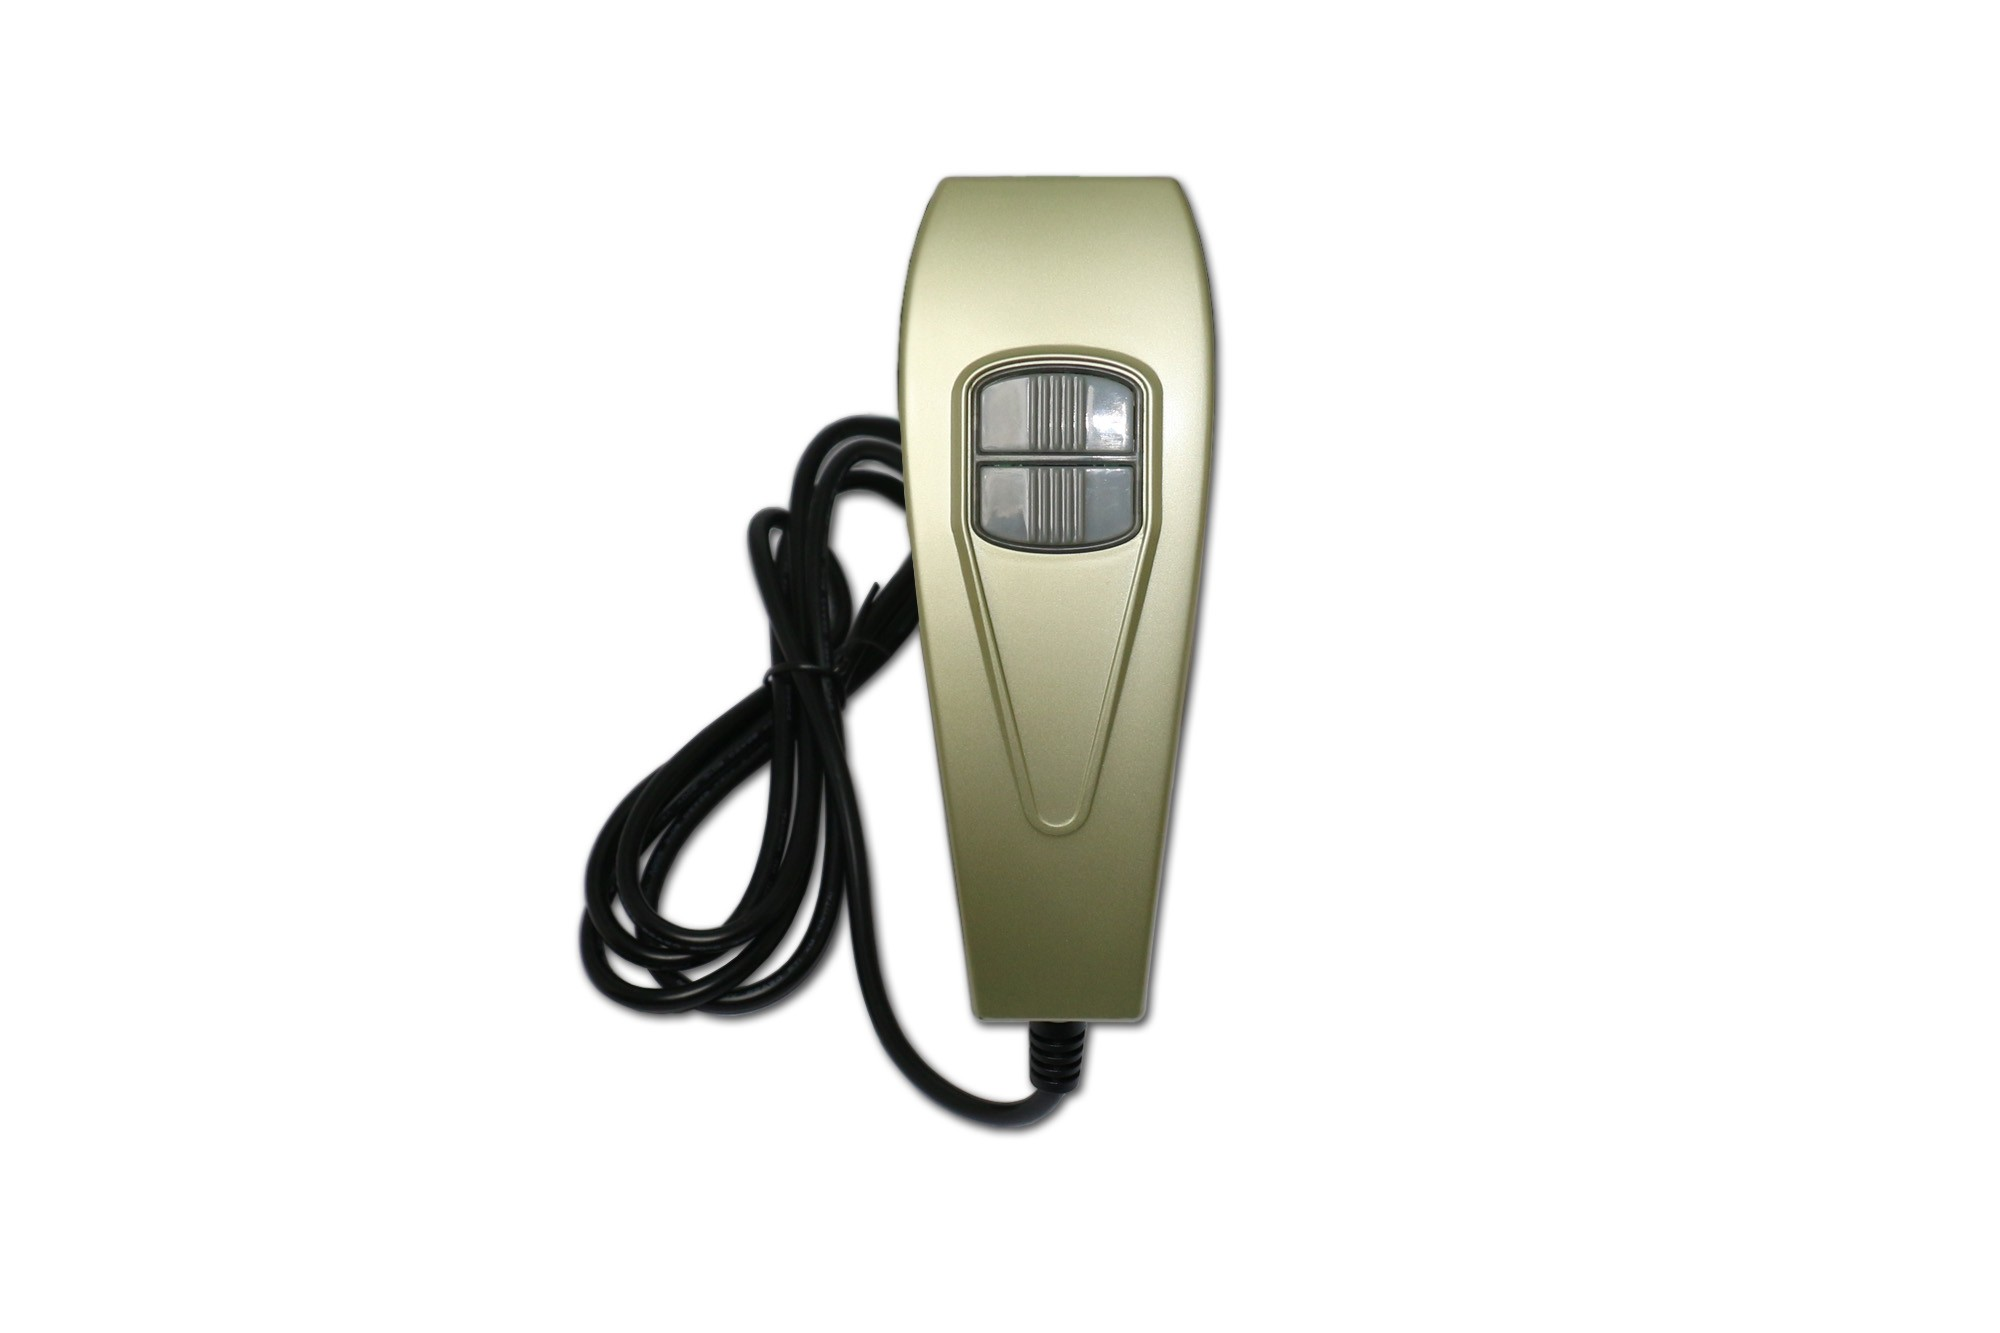 Wired handset remote control for single motor